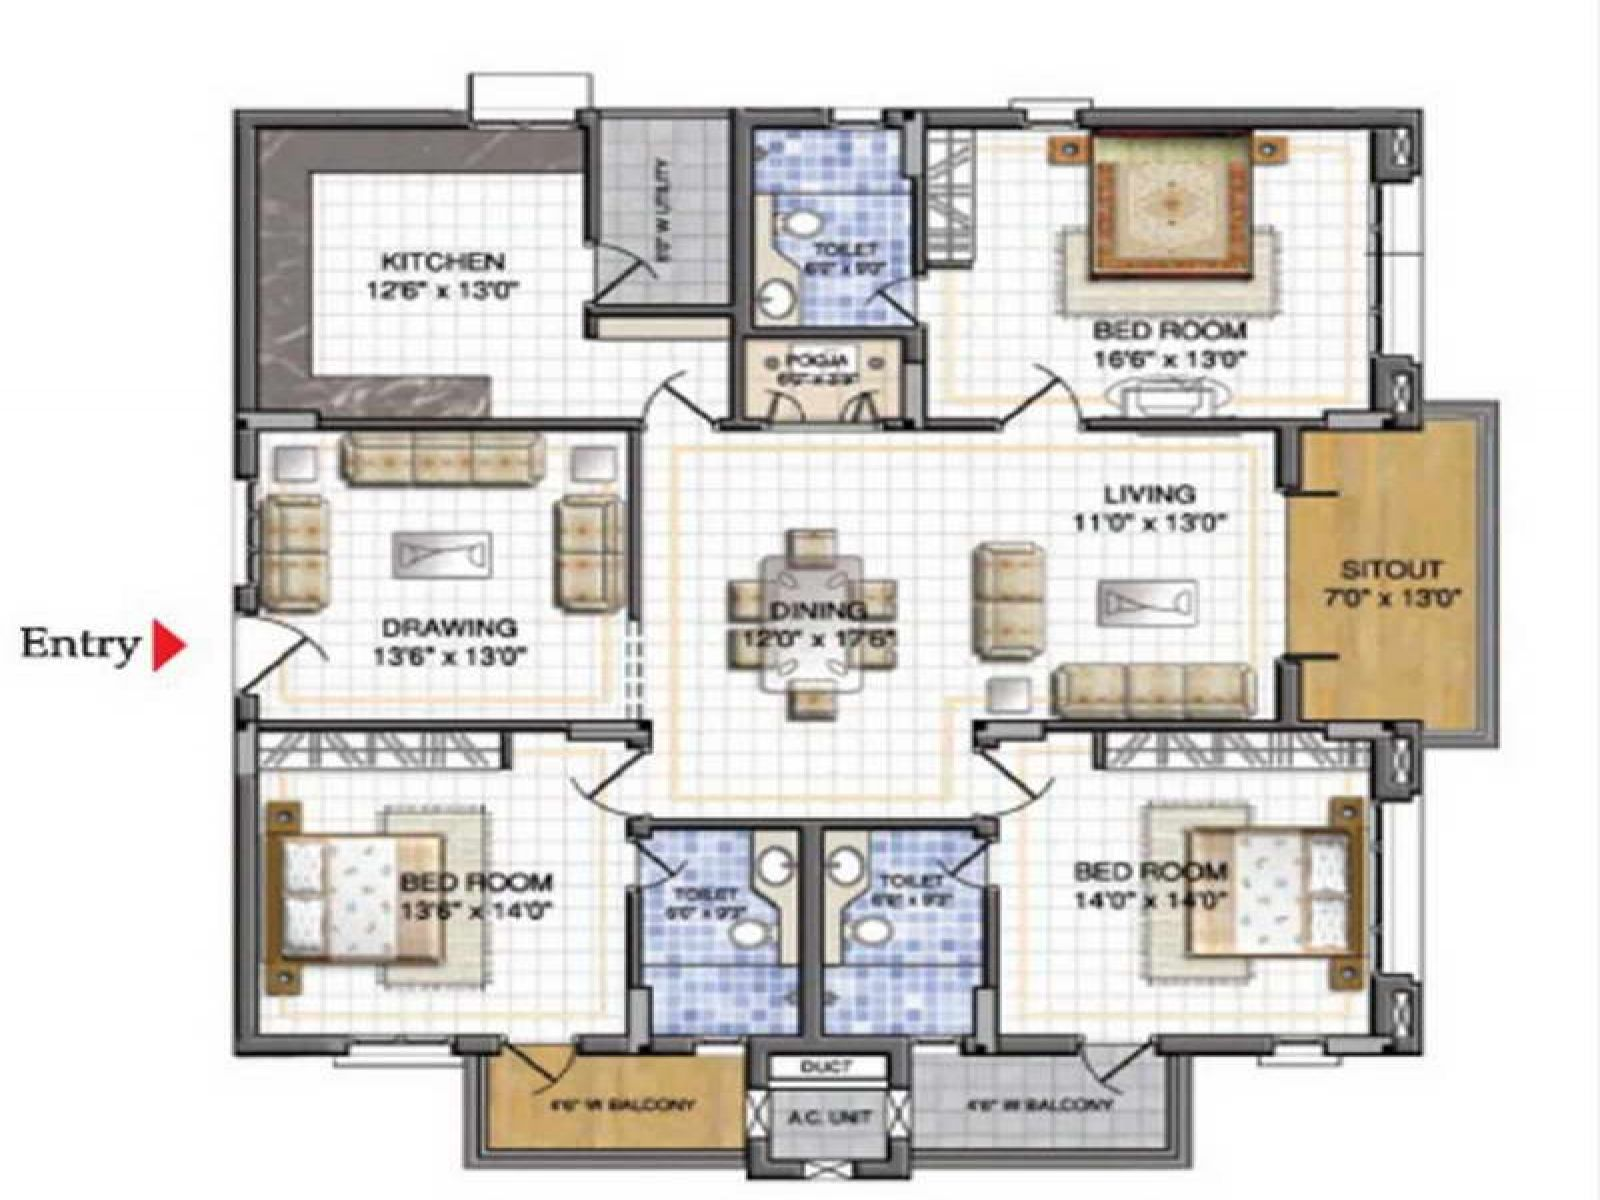 Sweet home 3d plans google search house designs pinterest layout online house plans Design your own house floor plans